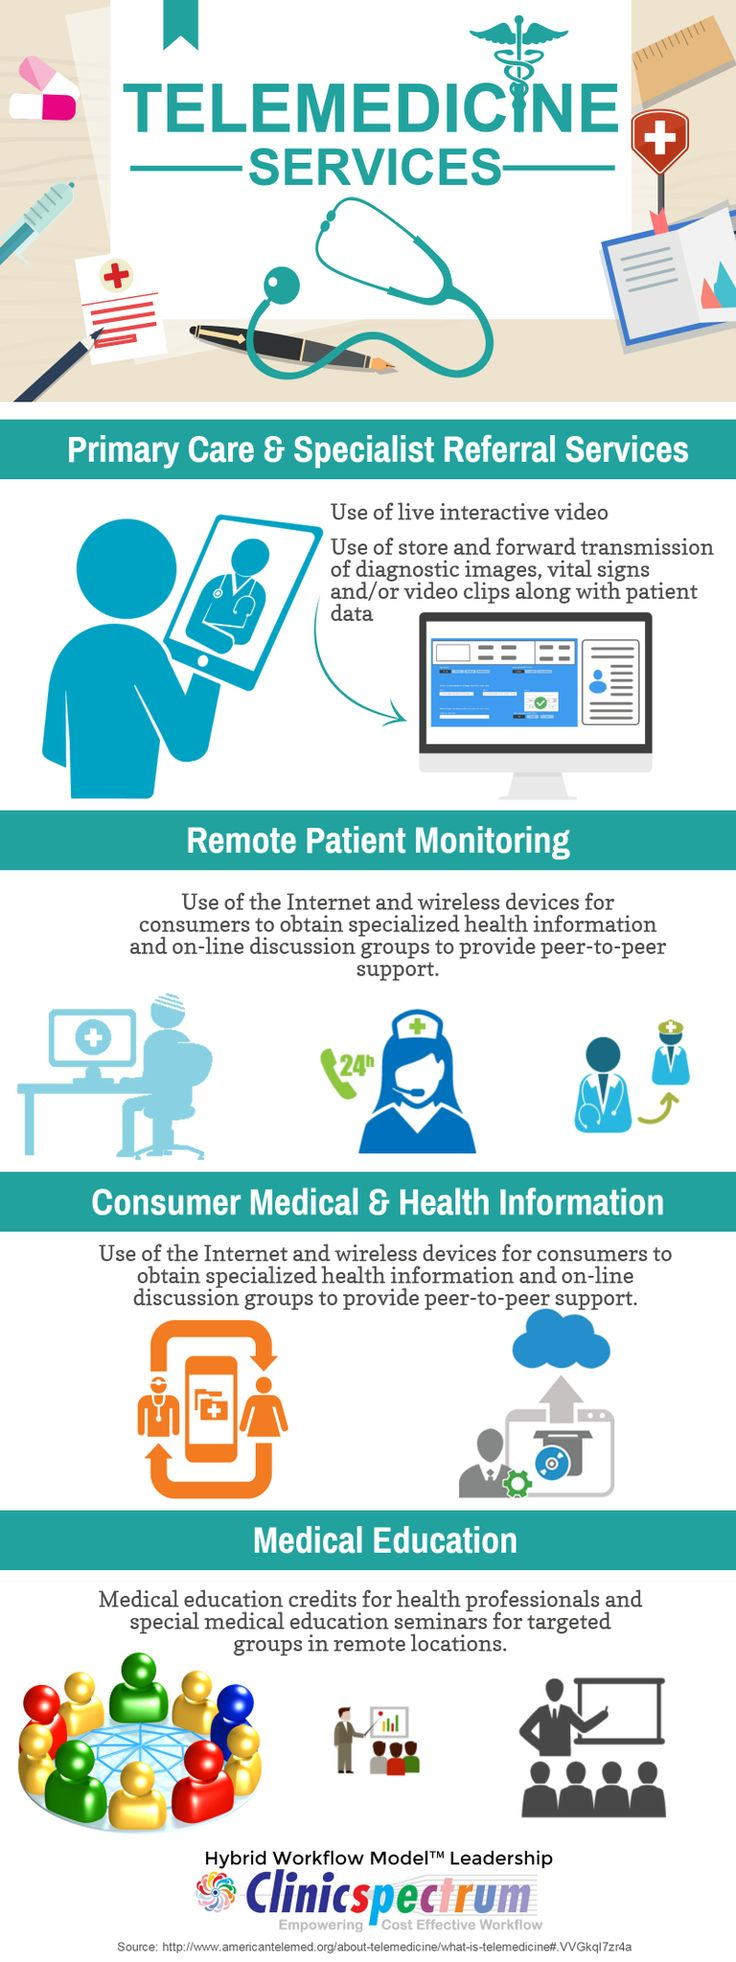 #Telemedicine Services an Infographics by @ClinicSpectrum @telehelp #HITsm